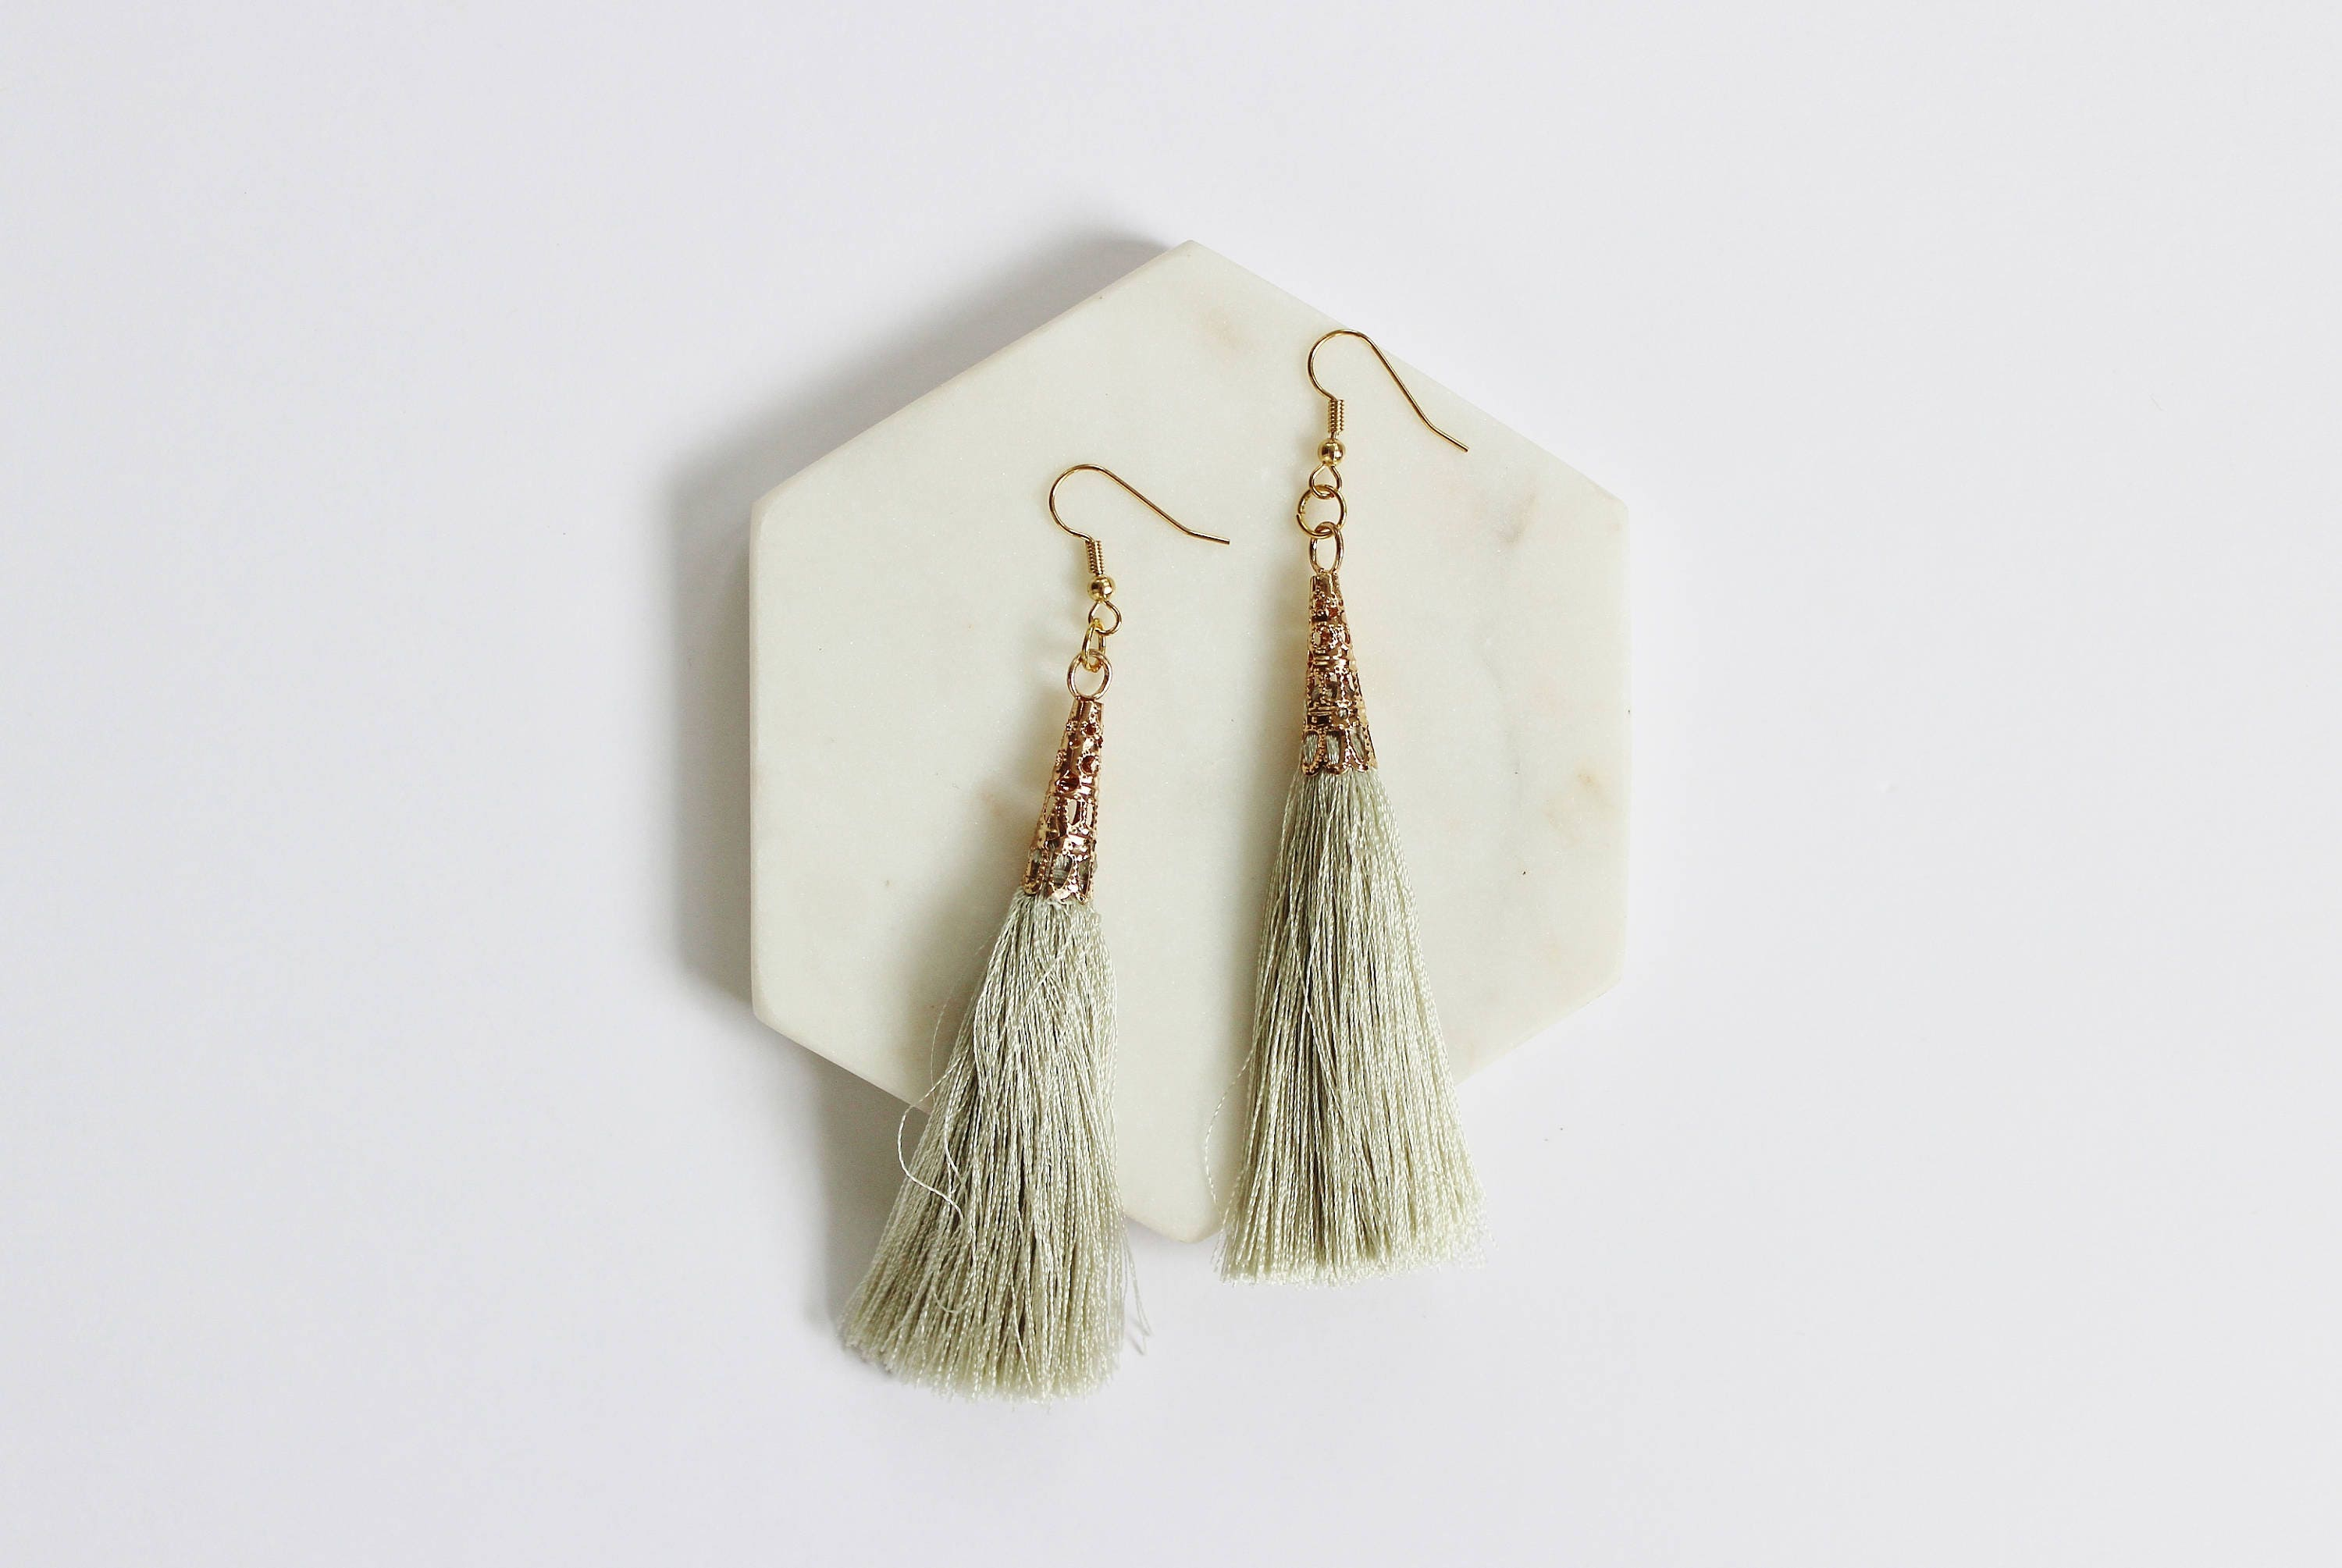 madison fringe emma earrings earring img products